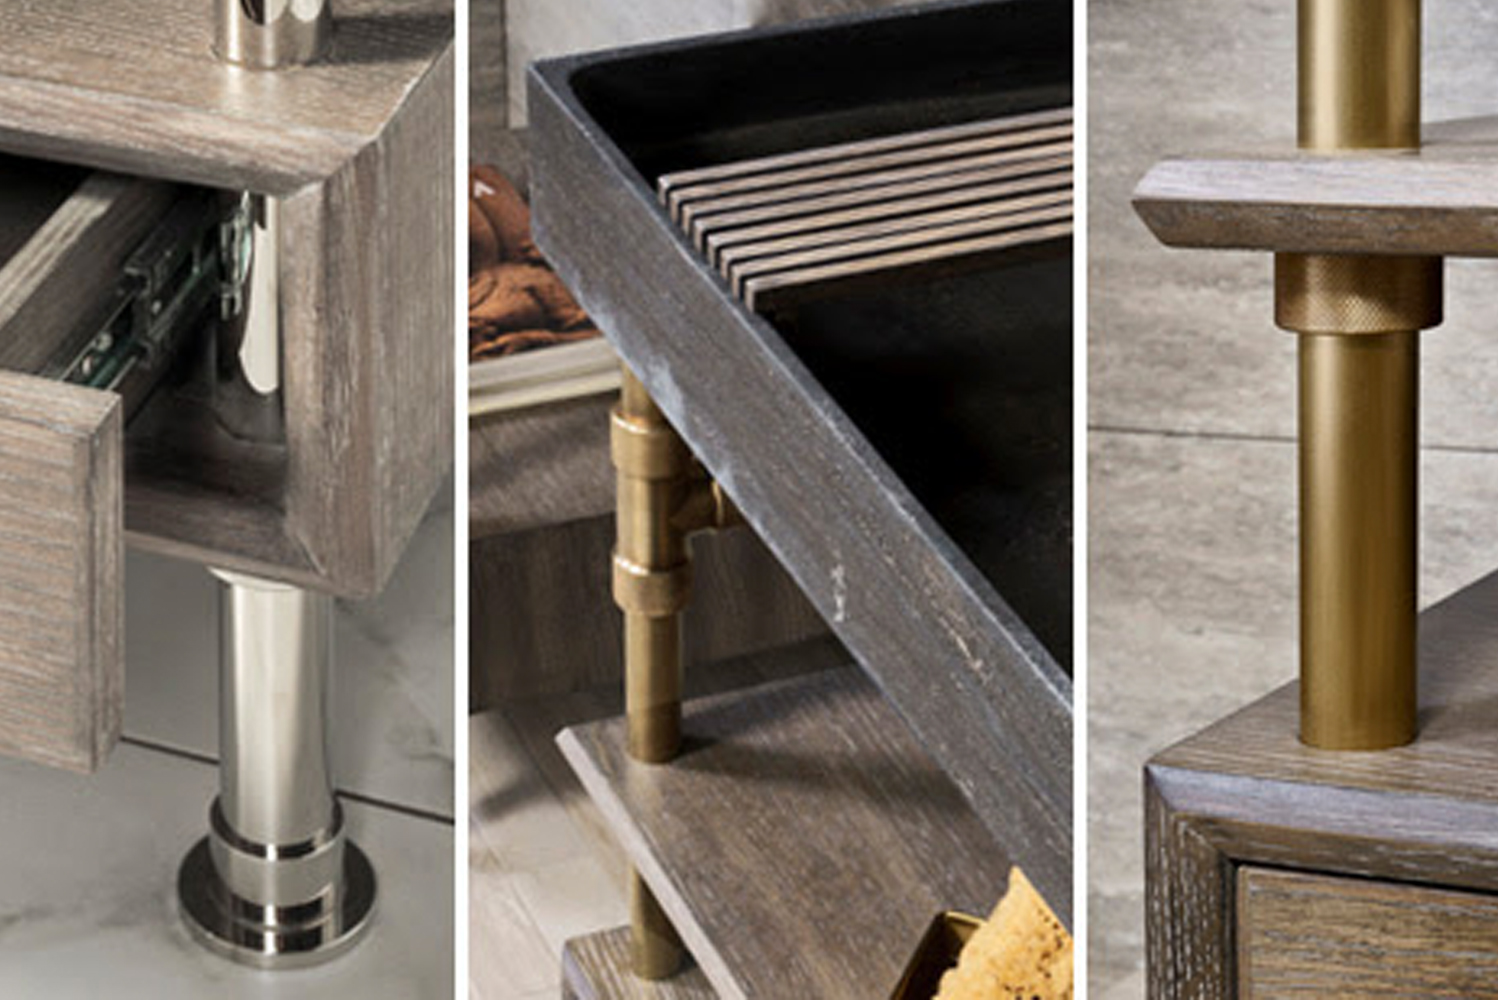 Available in single and double formats, Elemental vanities combine stone sinks with wood drawers and steel or wood shelving.